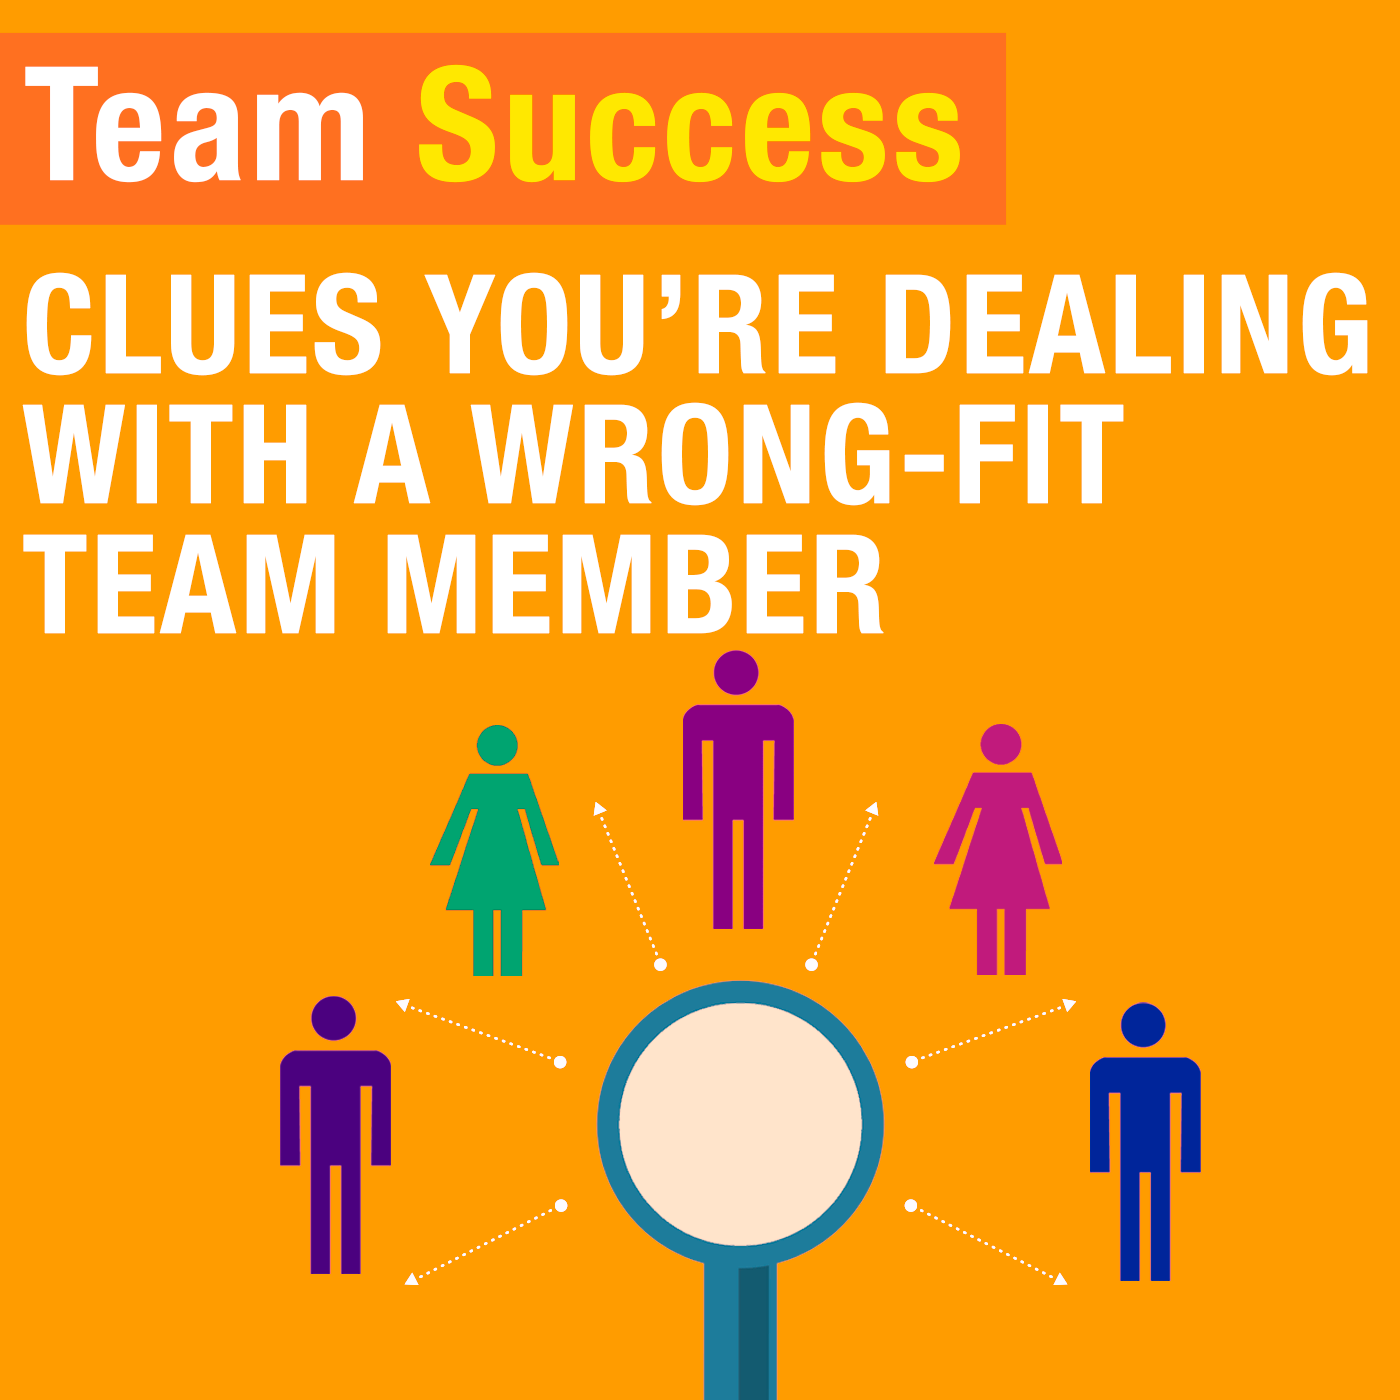 Clues You're Dealing With A Wrong-Fit Team Member